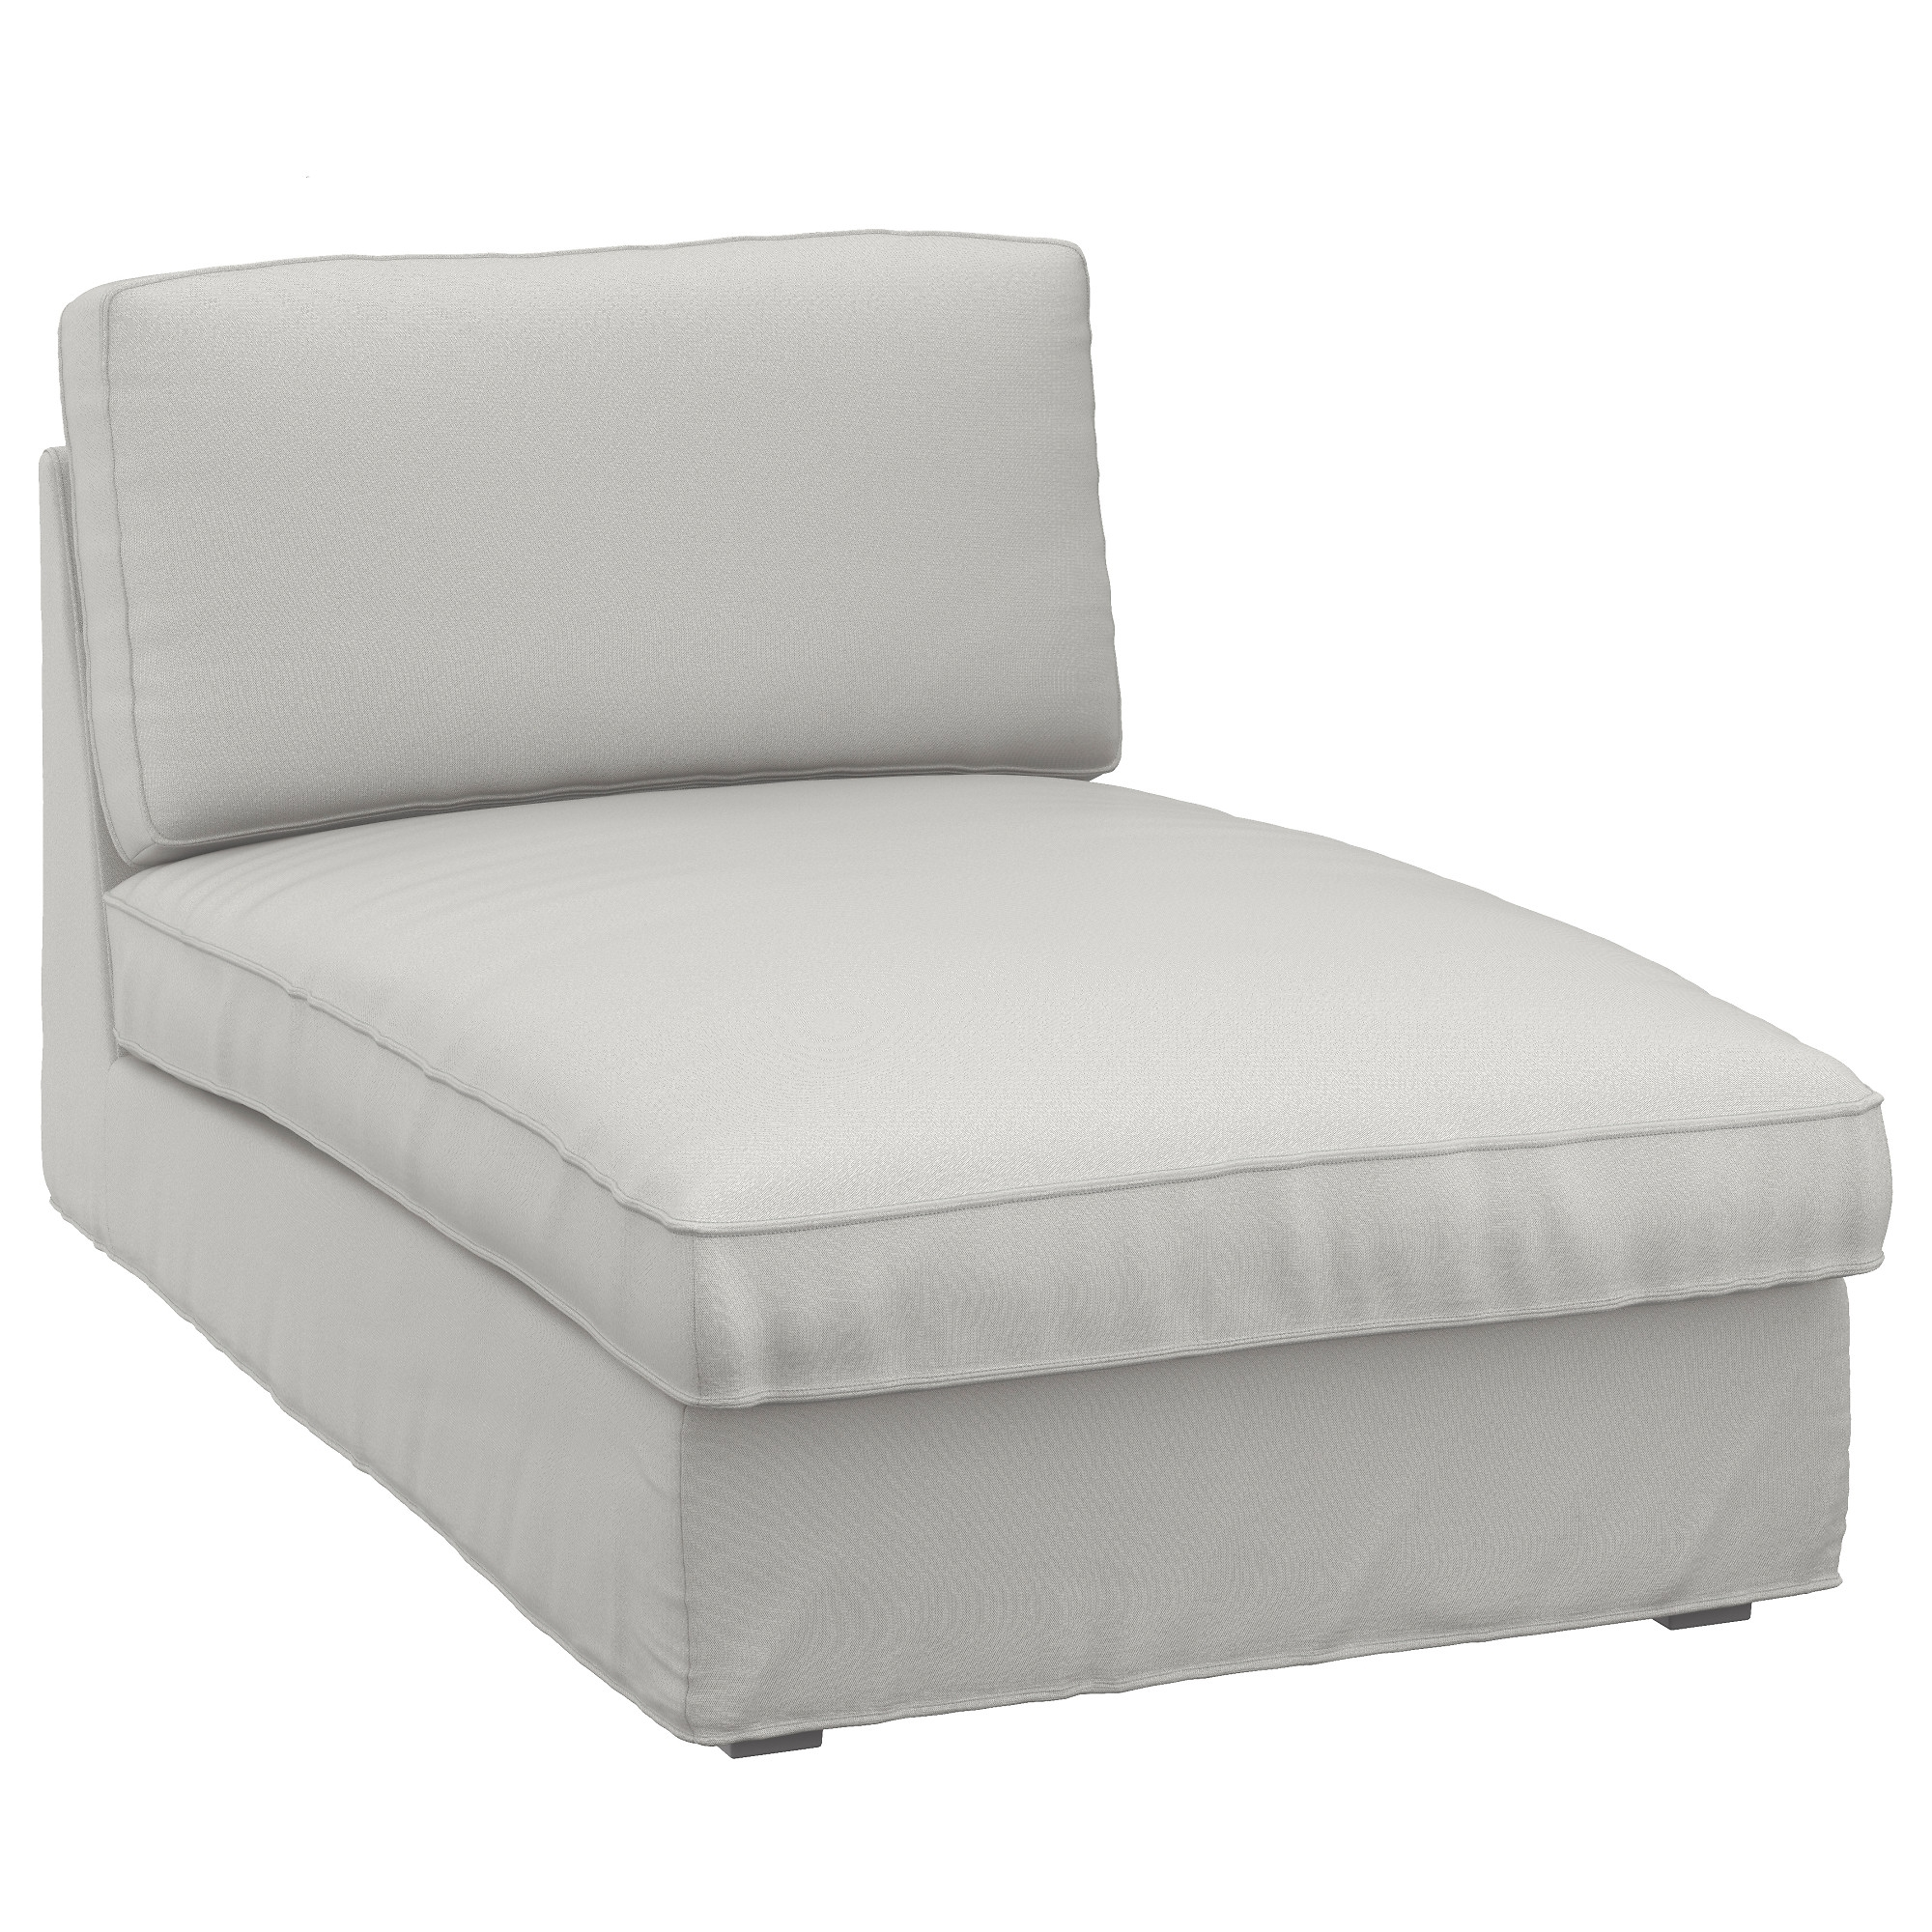 Ikea intended for Latest Ikea Chaise Lounges